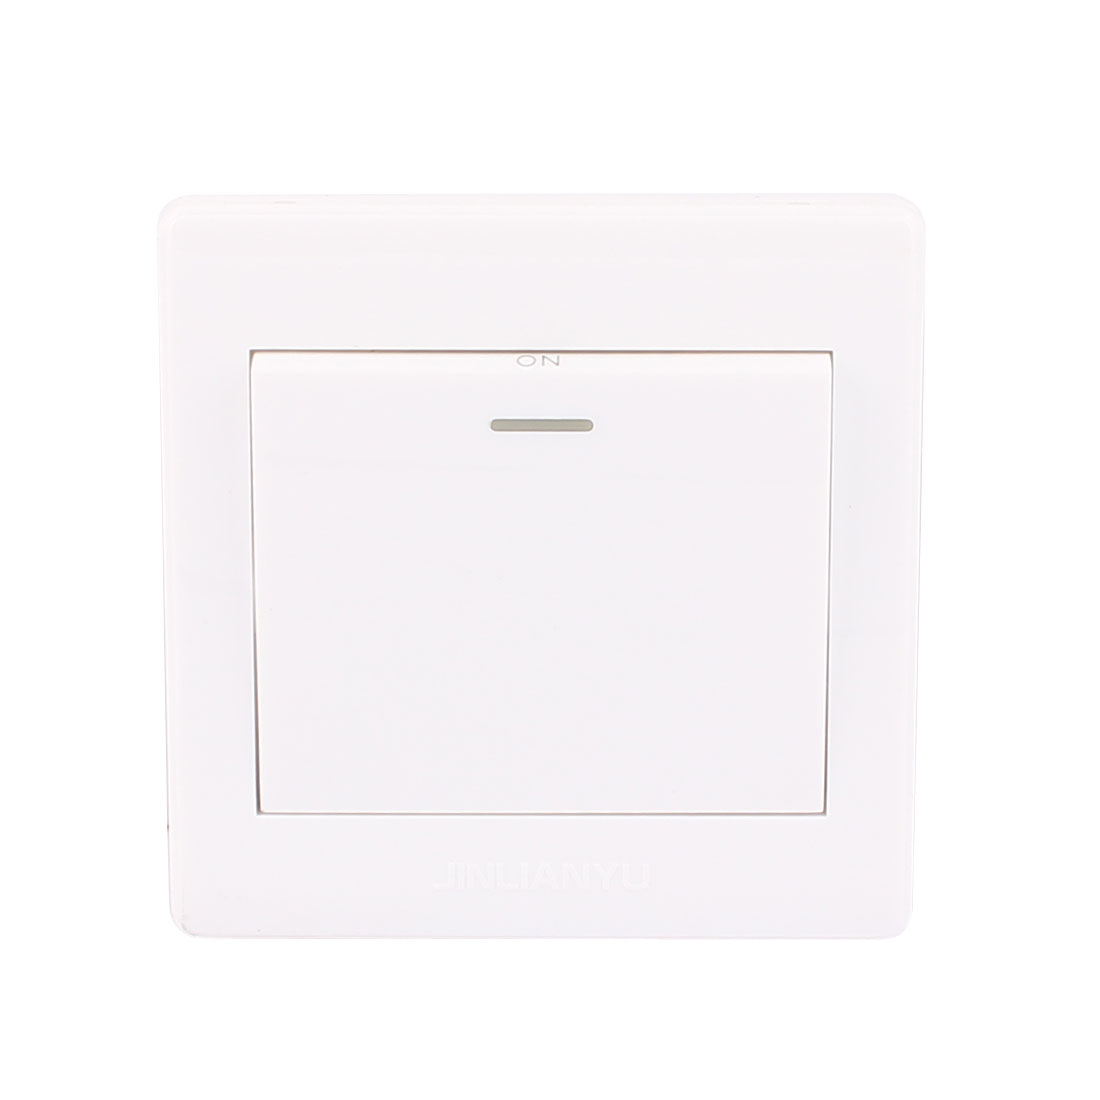 AC 250V 10A Square ON/OFF Single Press Button Light Switch Wall Plate